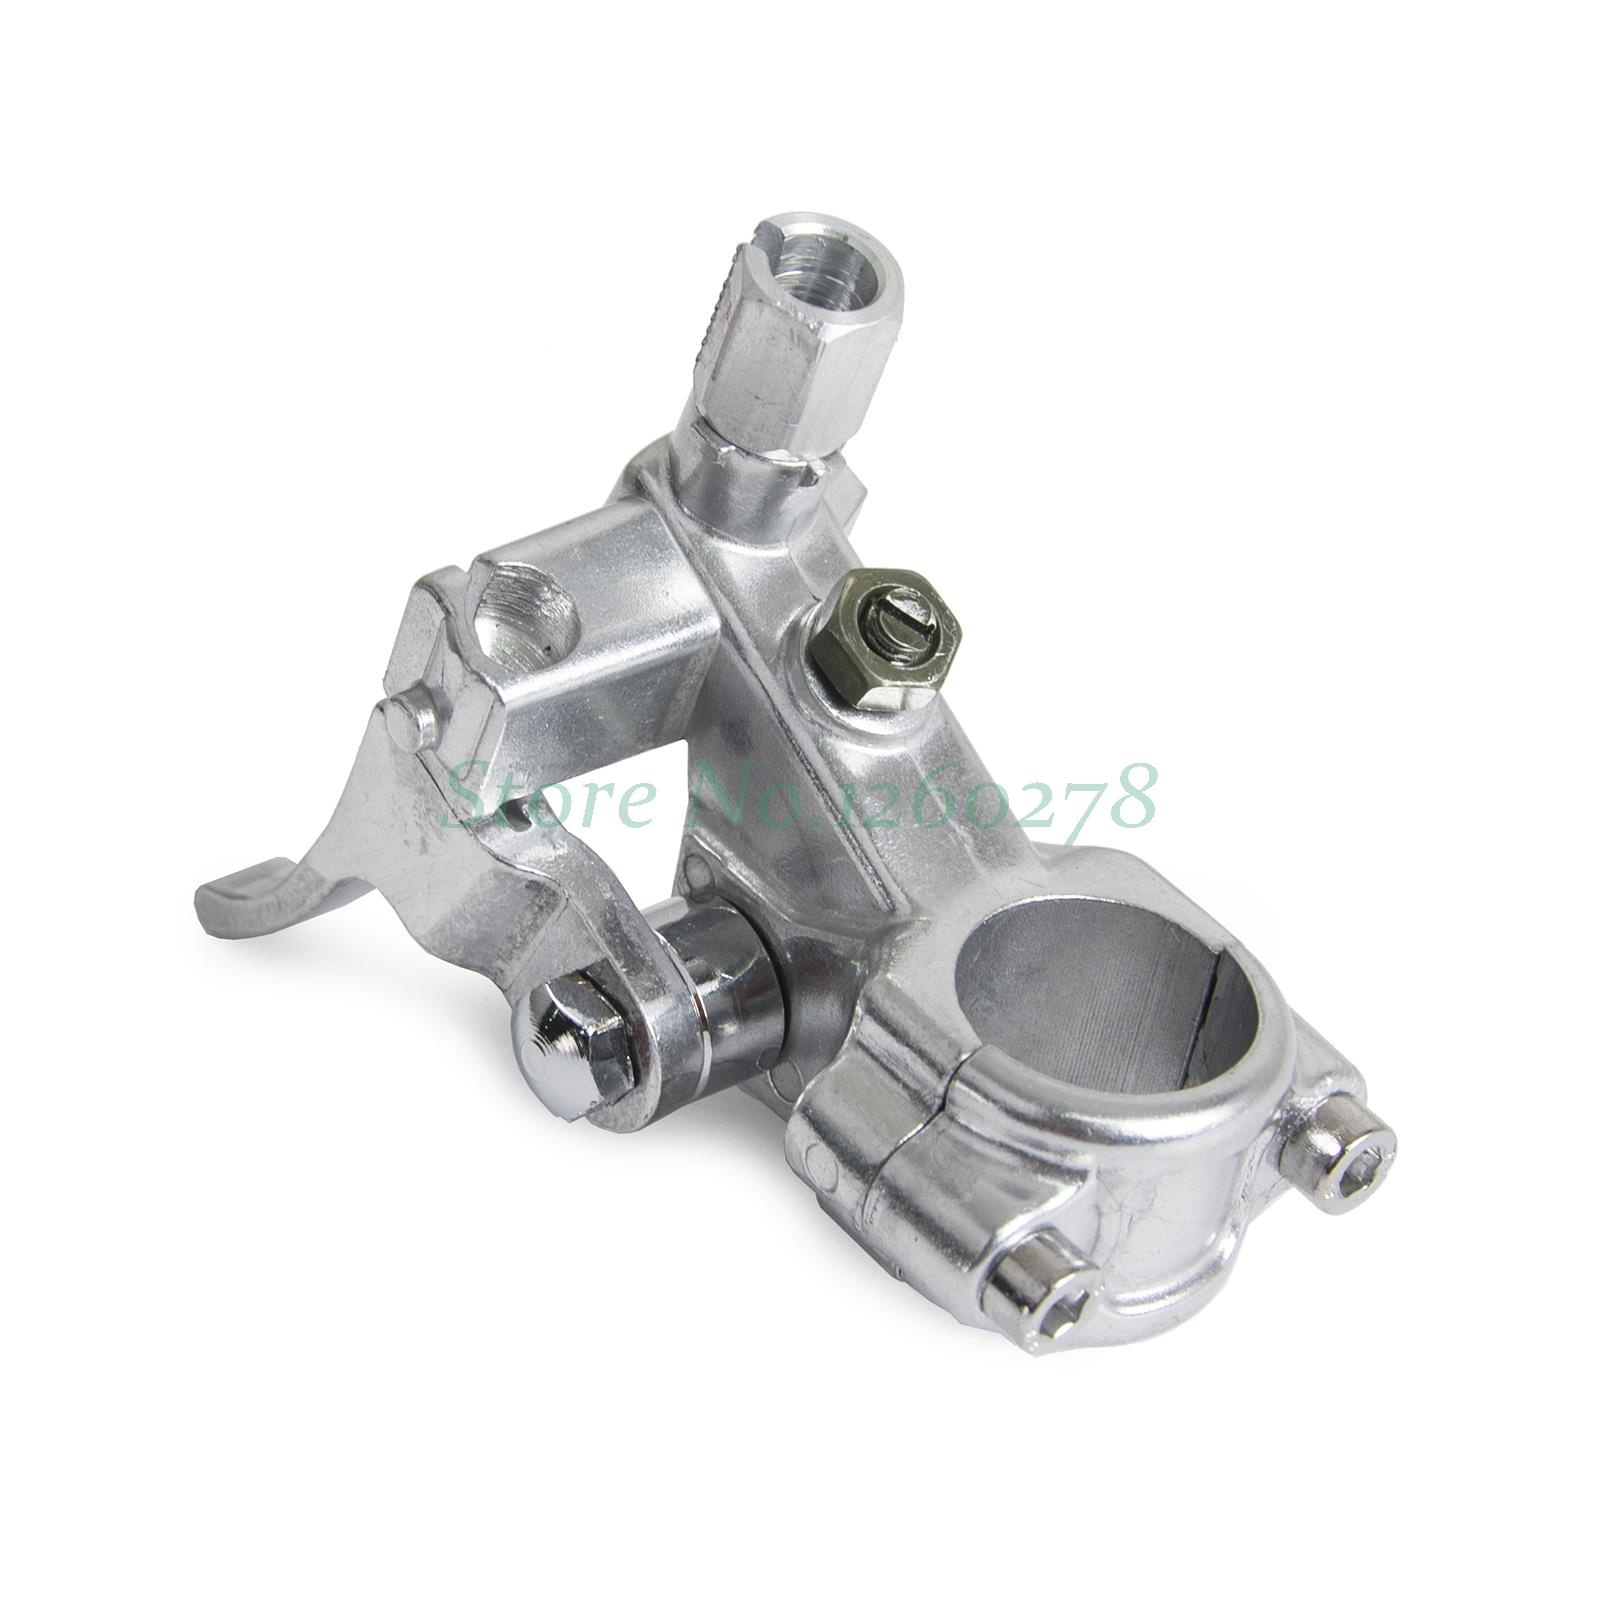 Motorcycle Clutch Lever Bracket For Honda CRF250R 2004-2009 CRF450R 2004-2008 CRF250X 2004-2016 CRF450X 2005-2016 offroad hand lever fit honda crf 250 450 07 12